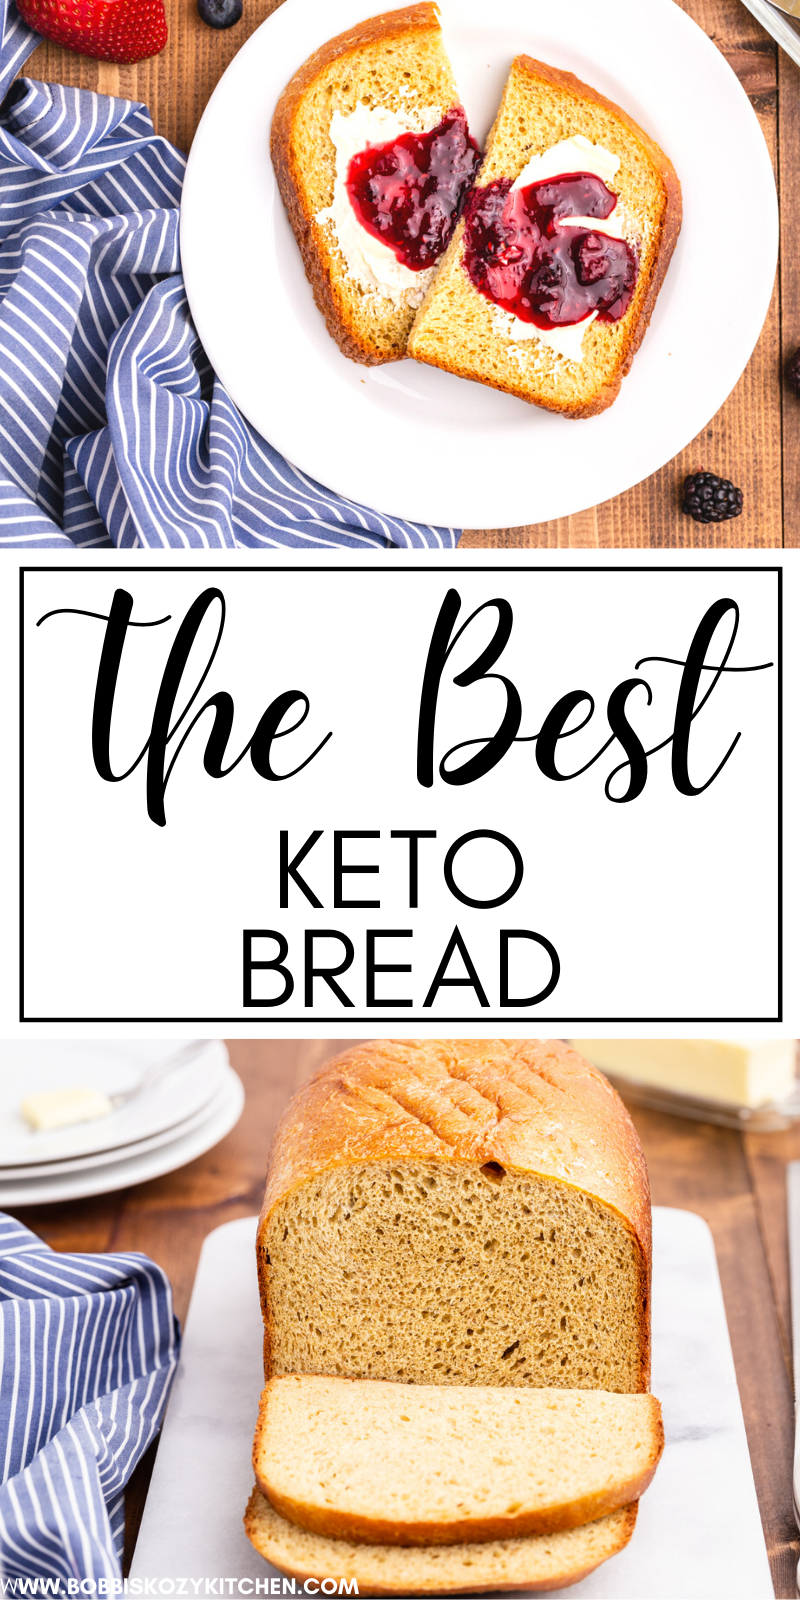 The BEST Keto Bread - If you have been looking for the best keto bread recipe look no further. This recipe creates a light loaf of bread that will make you think you are cheating on your diet, but you aren't! #keto #lowcarb #bread #recipe